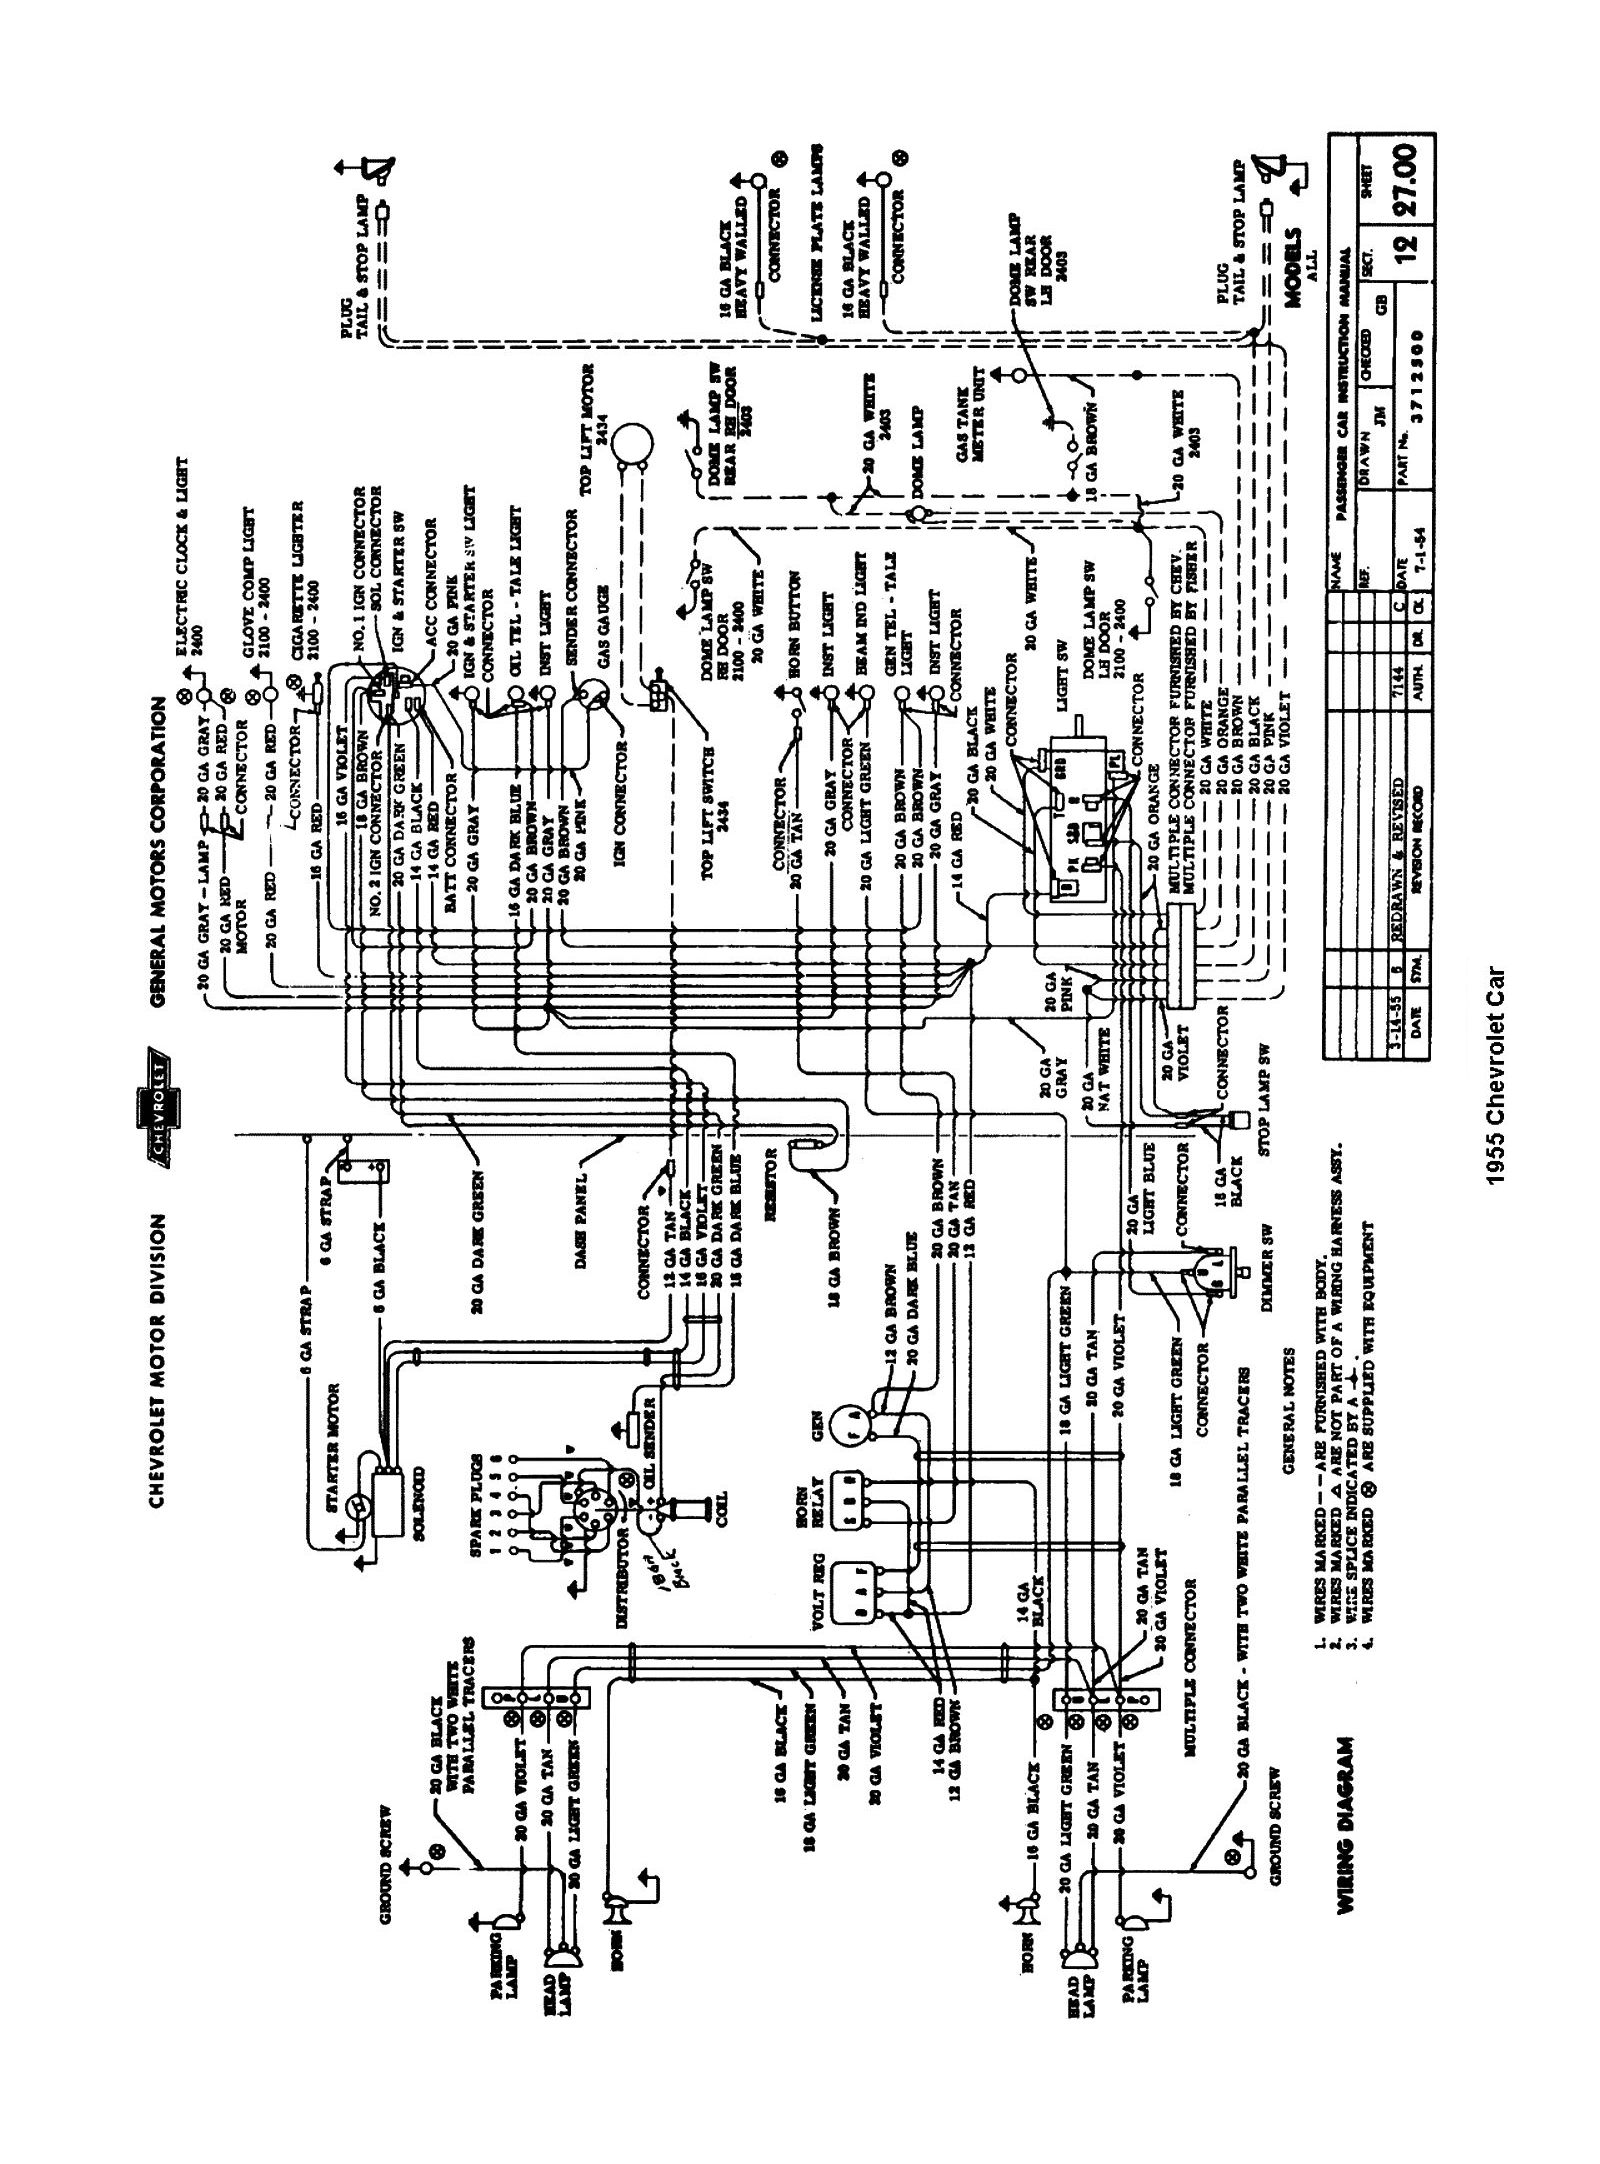 55car1 appealing 1939 chrysler wiring diagram pictures best image 1953 chevy truck headlight switch wiring diagram at et-consult.org